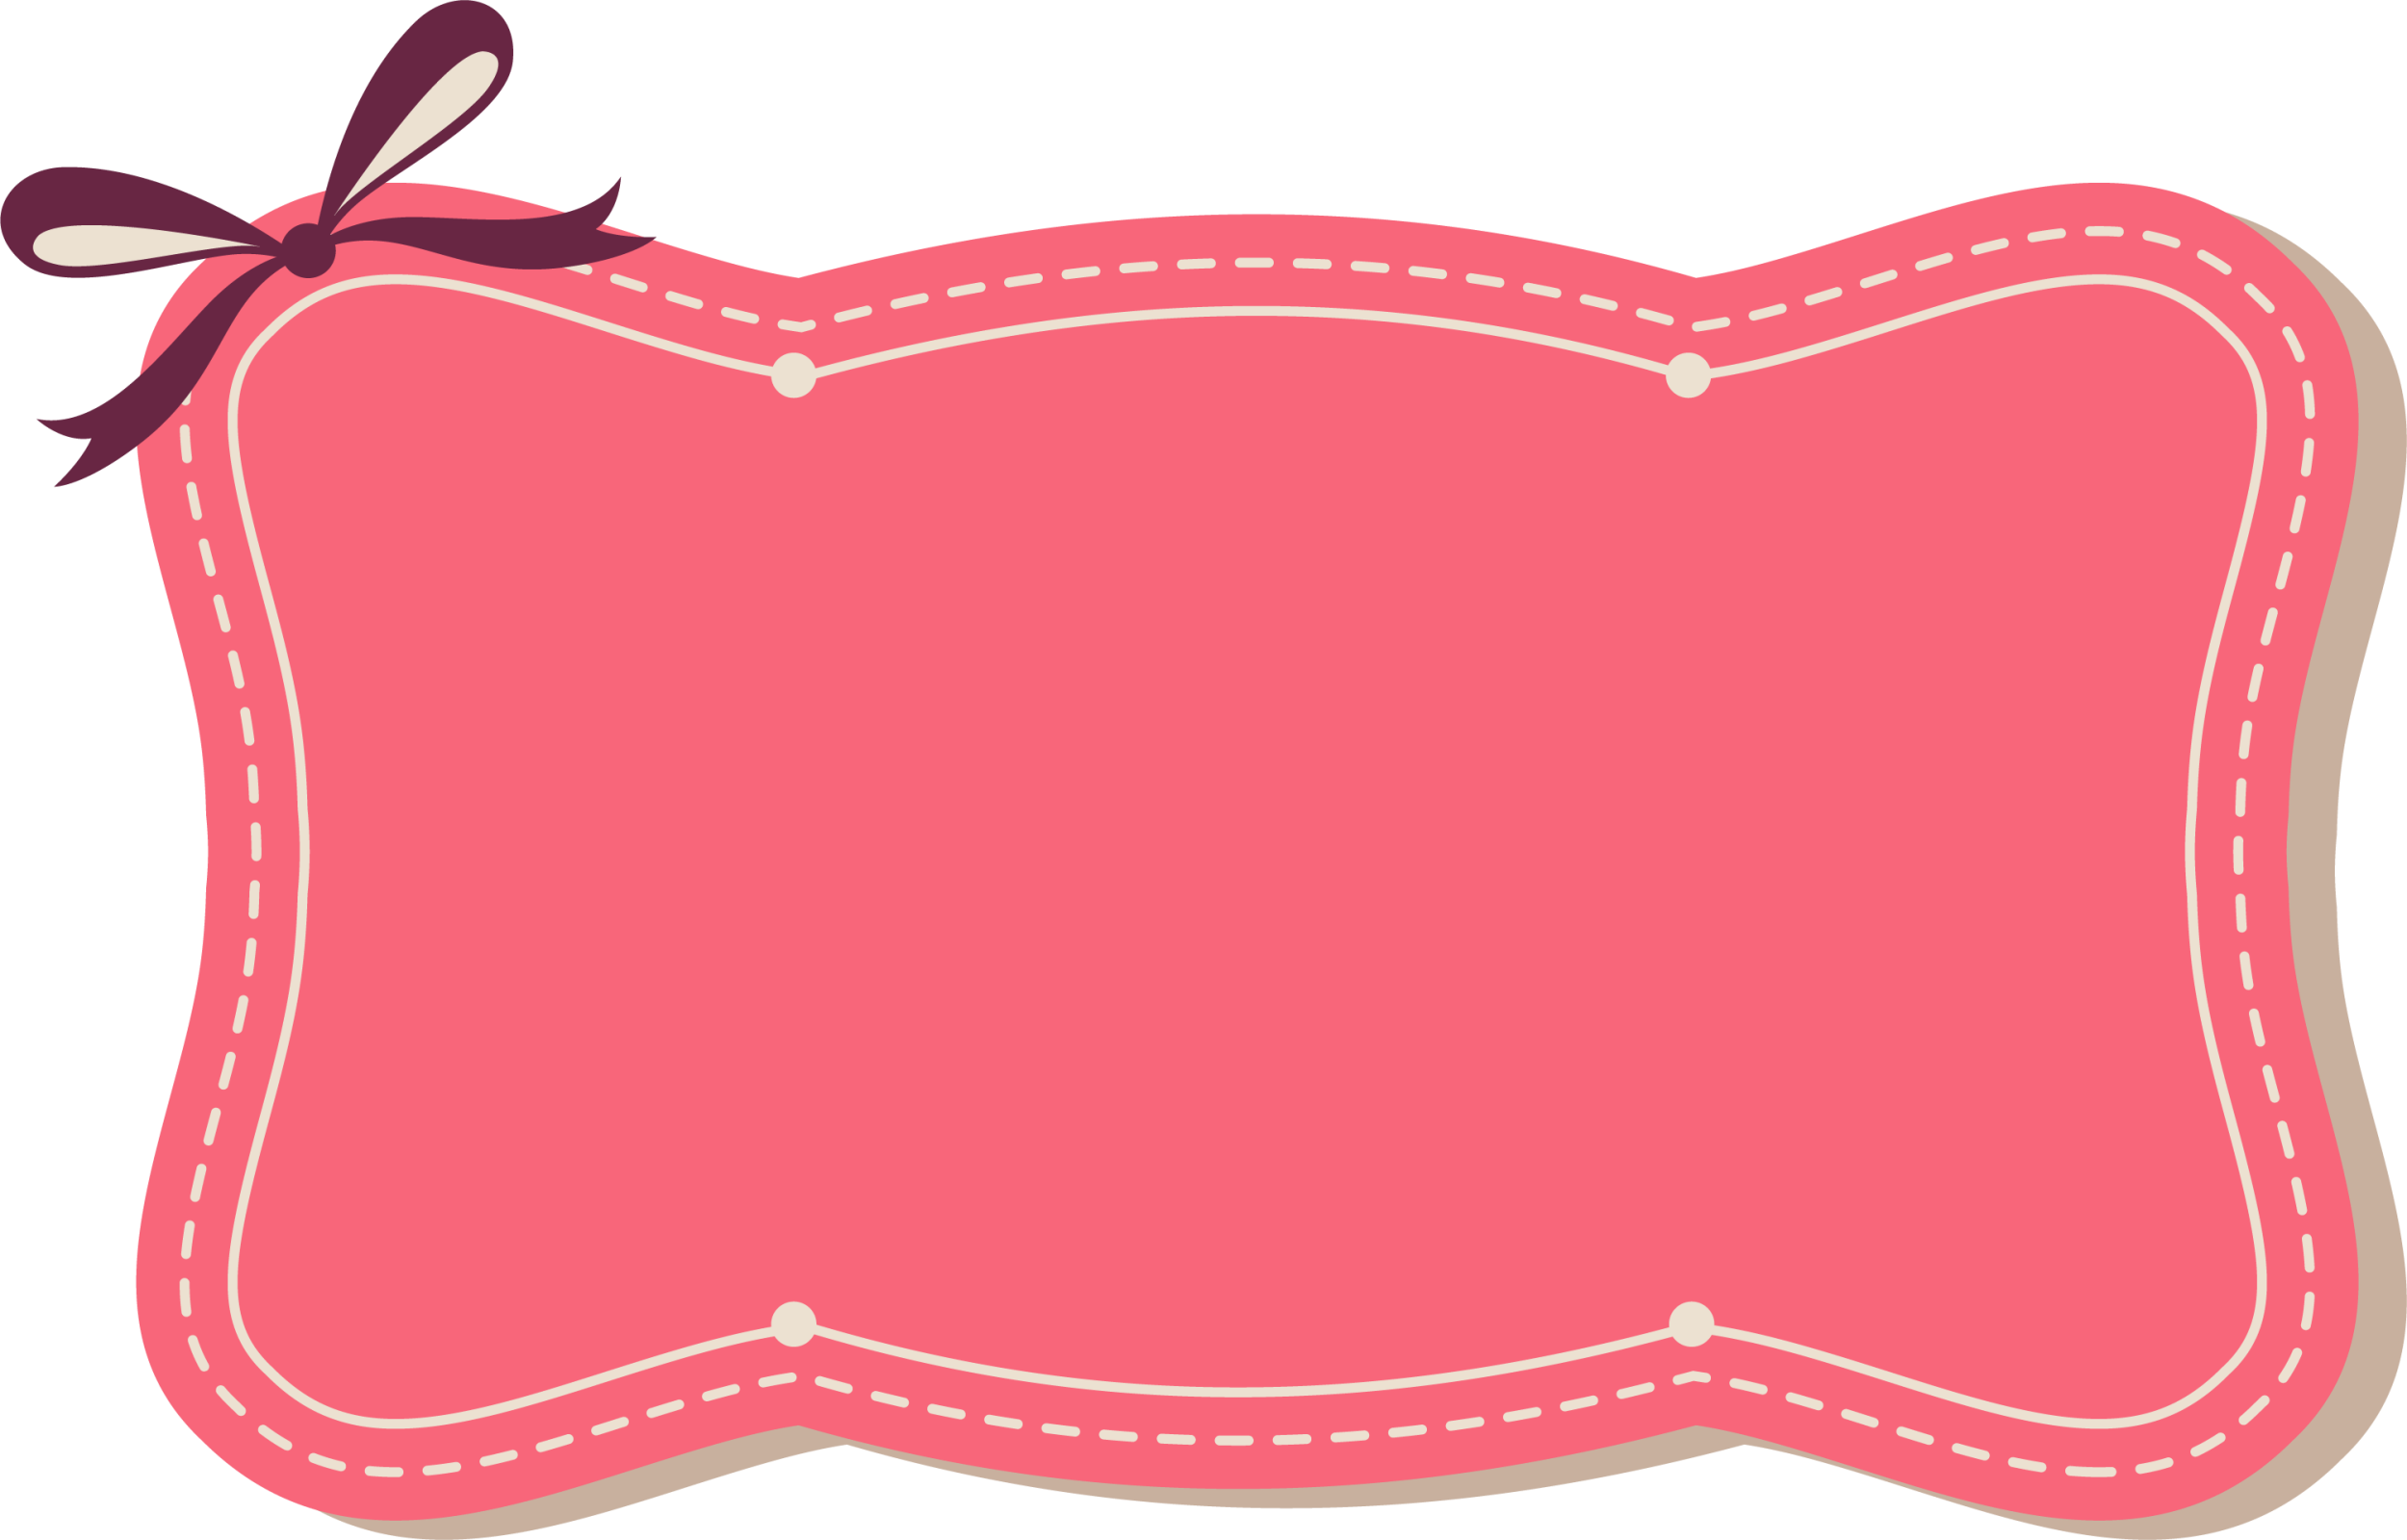 3 ribbons frame clipart clipart images gallery for free.